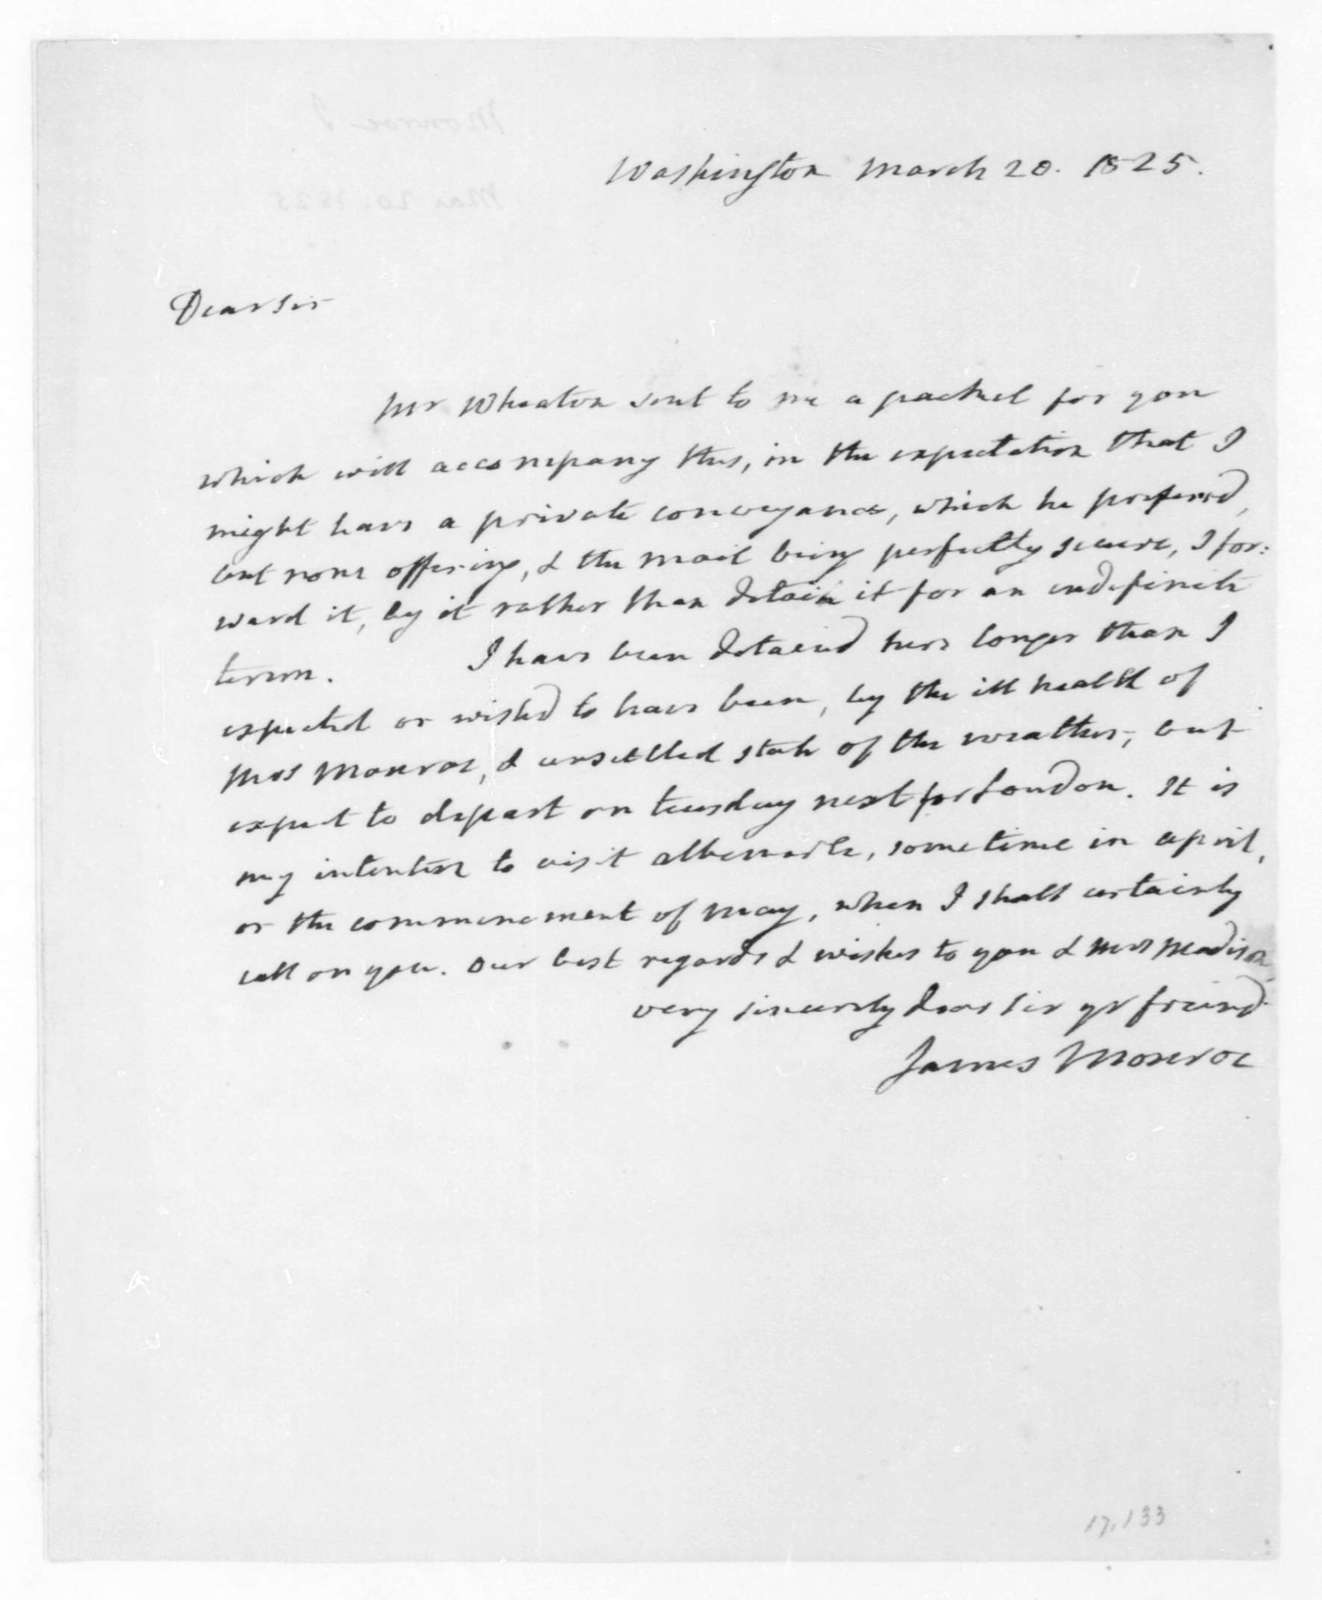 James Monroe to James Madison, March 20, 1825.